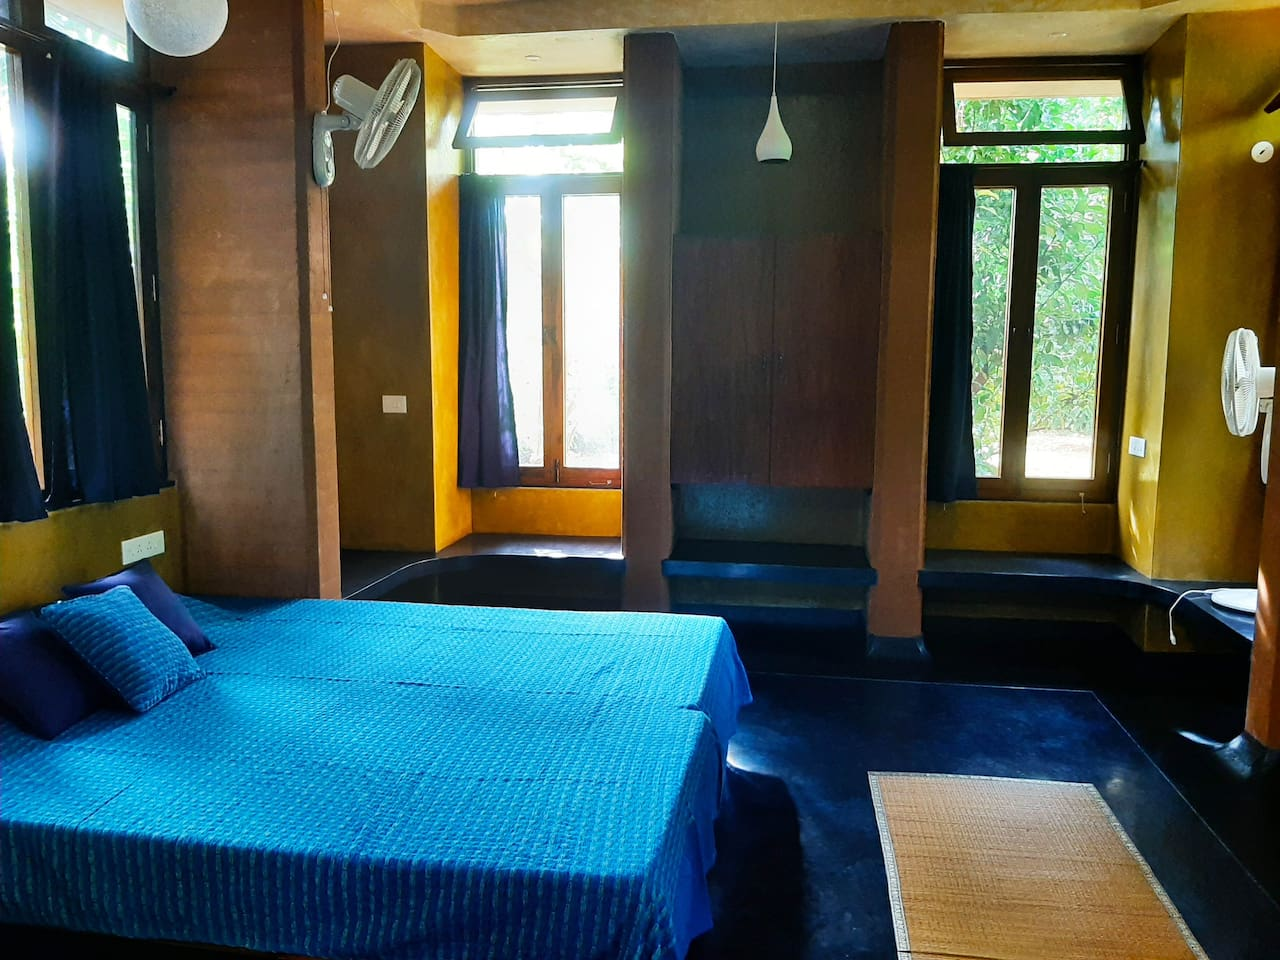 Large, airy double bedroom, where beds can be separated on request